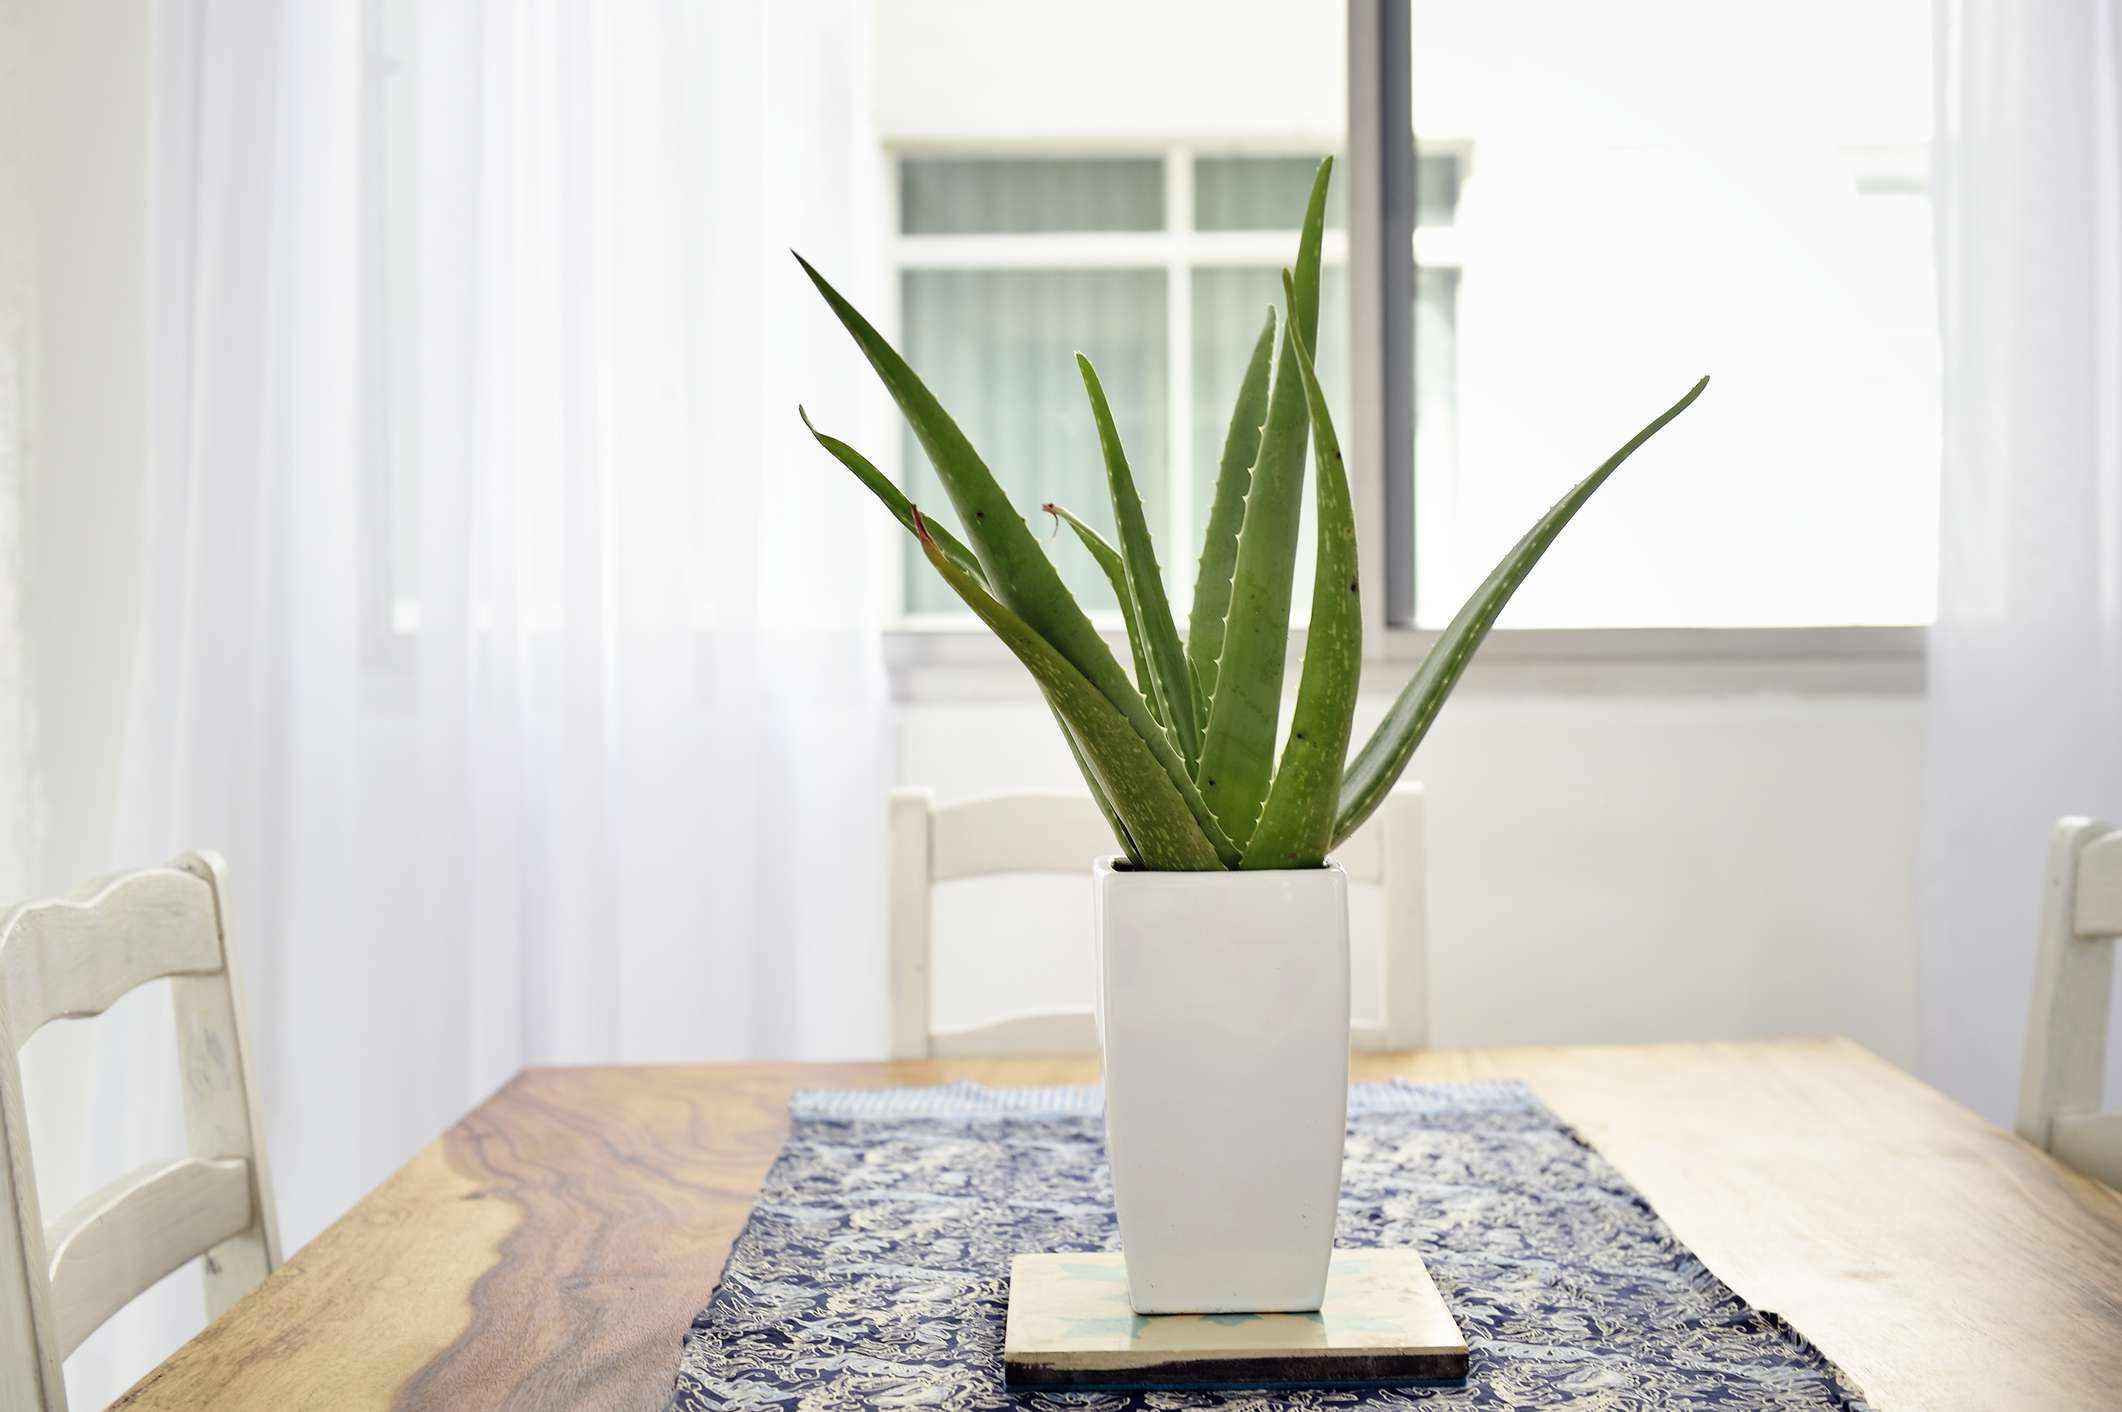 An aloe plant sits on a wooden dining table.